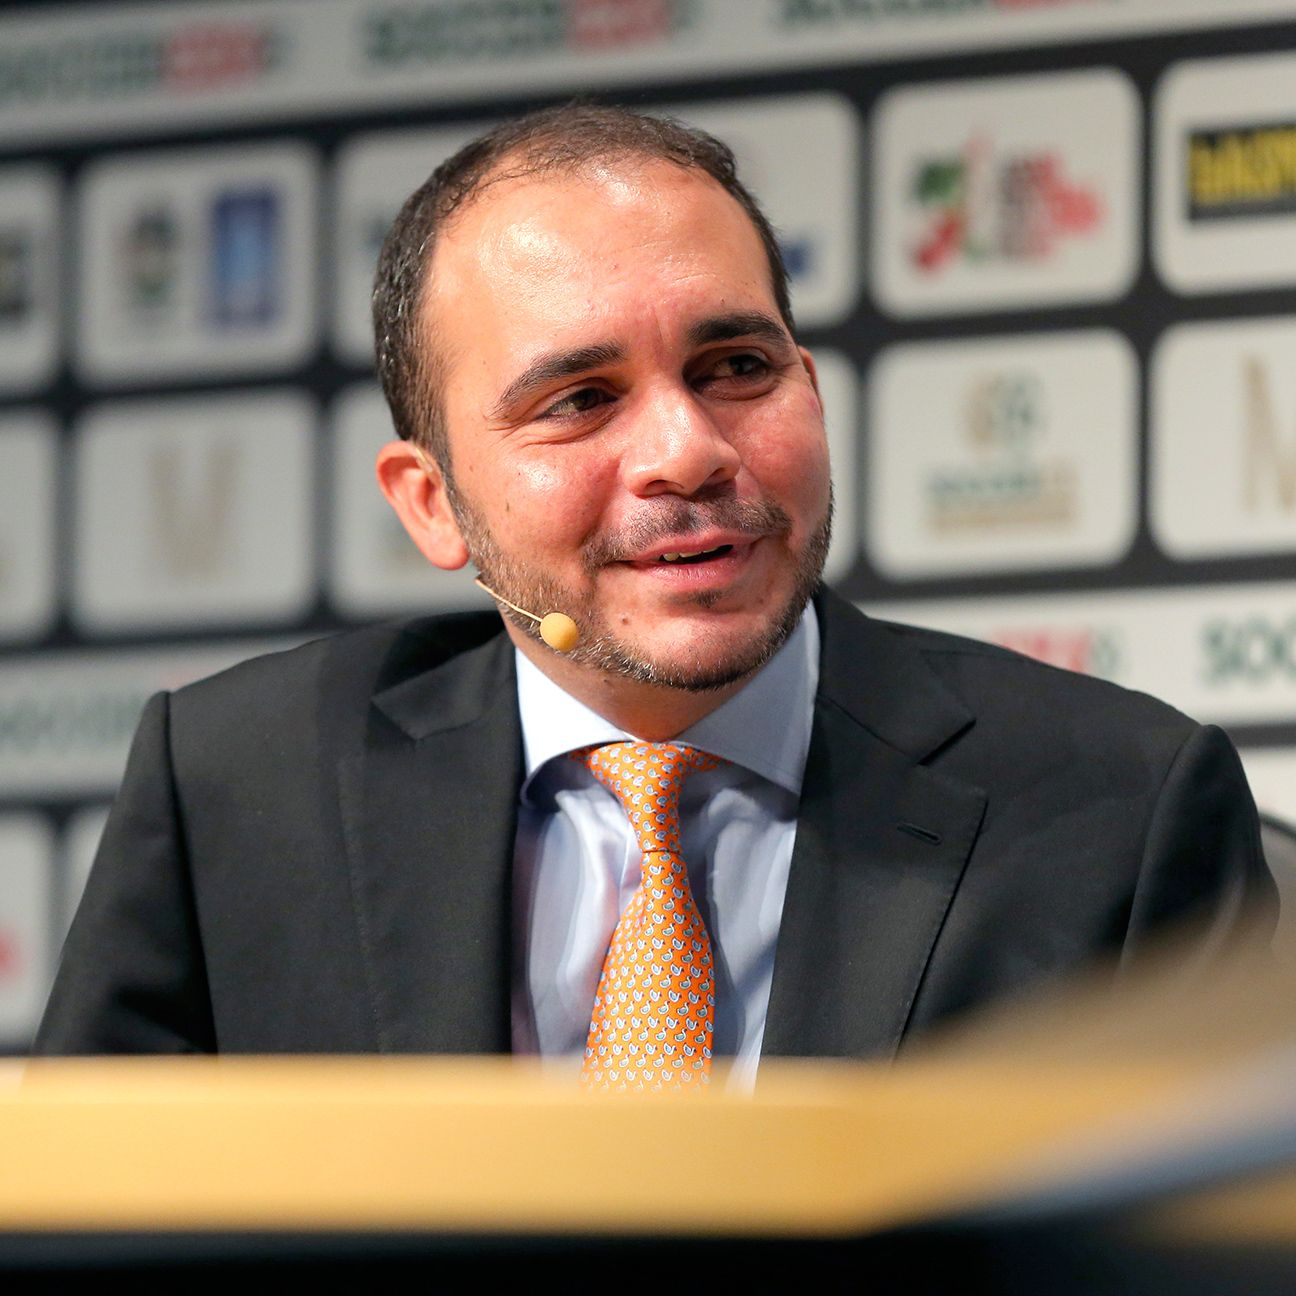 Prince Ali needs to make inroads in Asia to gain more support.